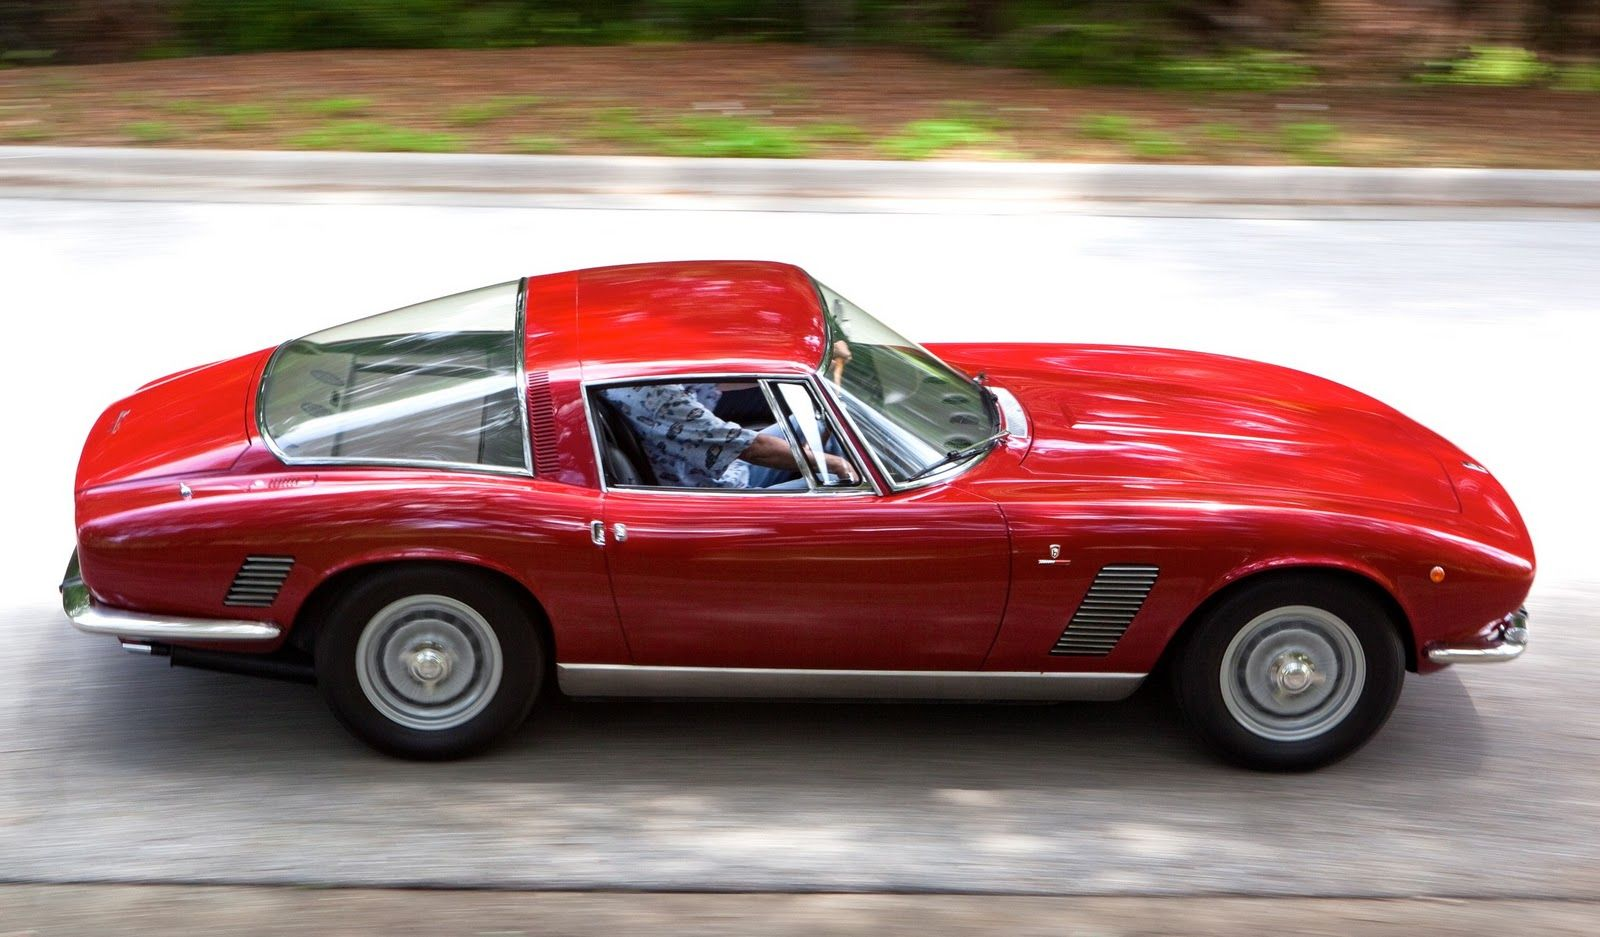 iso grifo very interesting supercar had a chevrolet 327 v8 but was